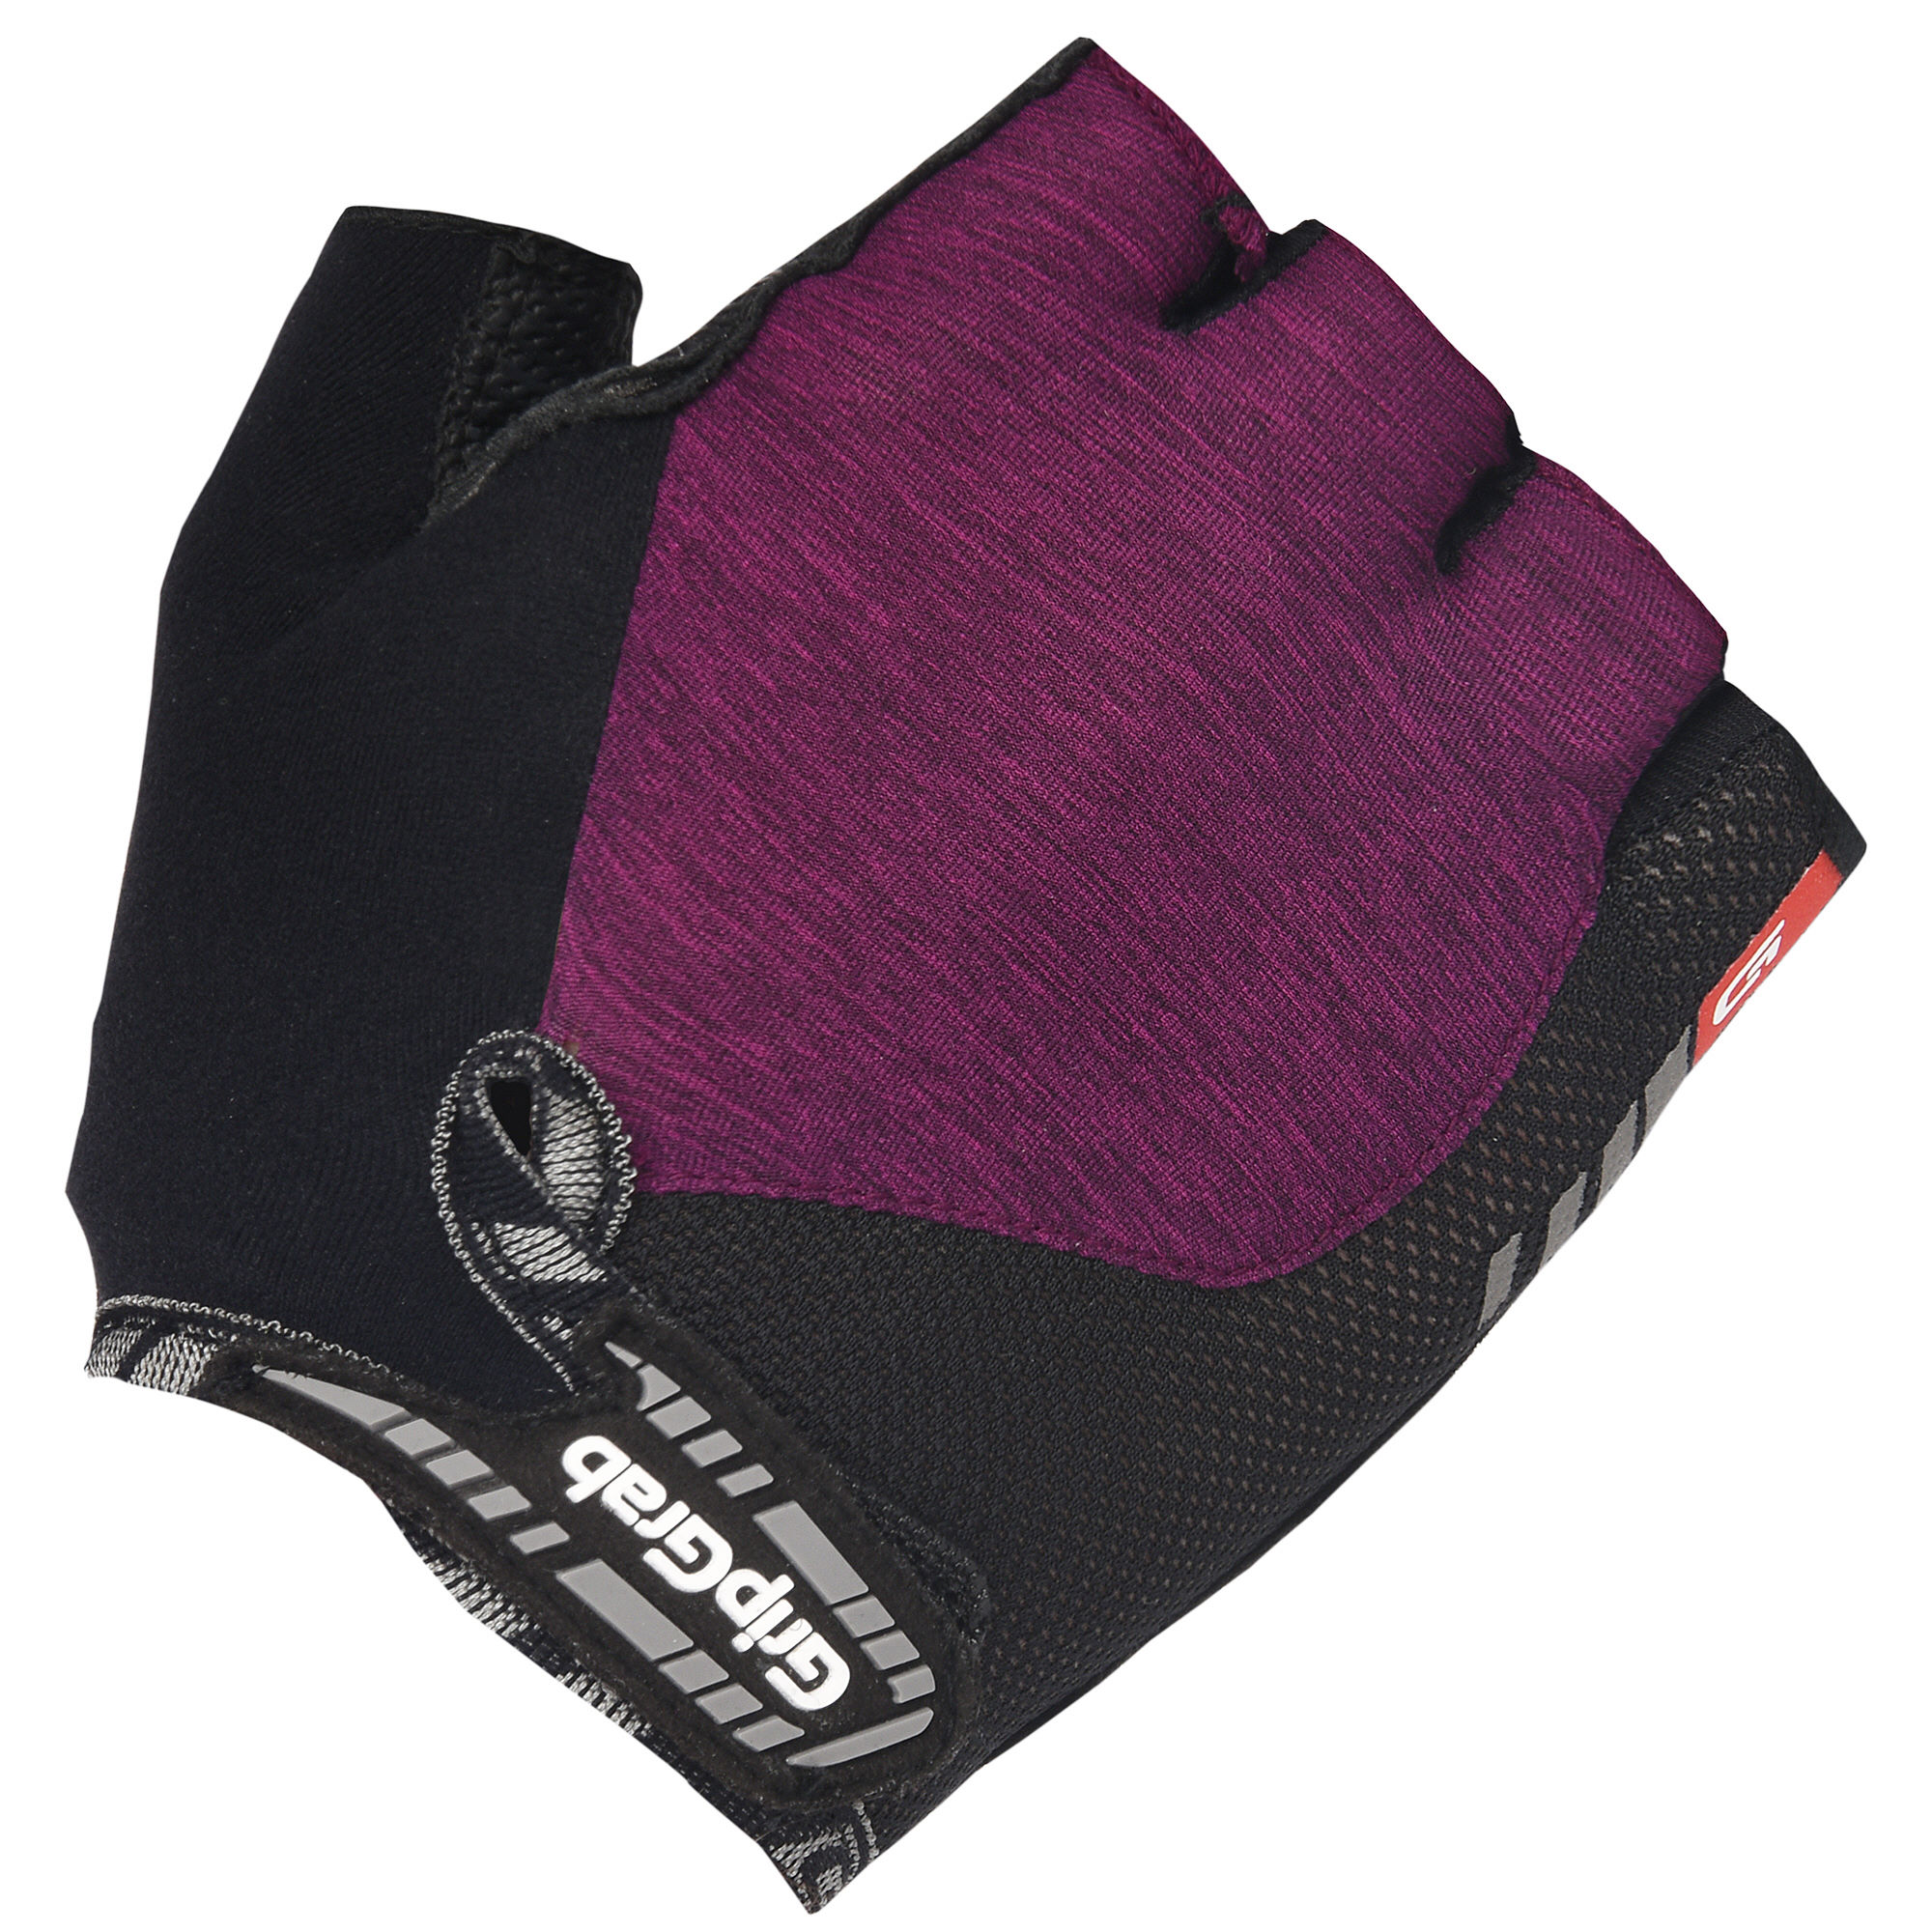 Ladies leather gloves australia - Gripgrab Womens Exclusive Progel Gloves